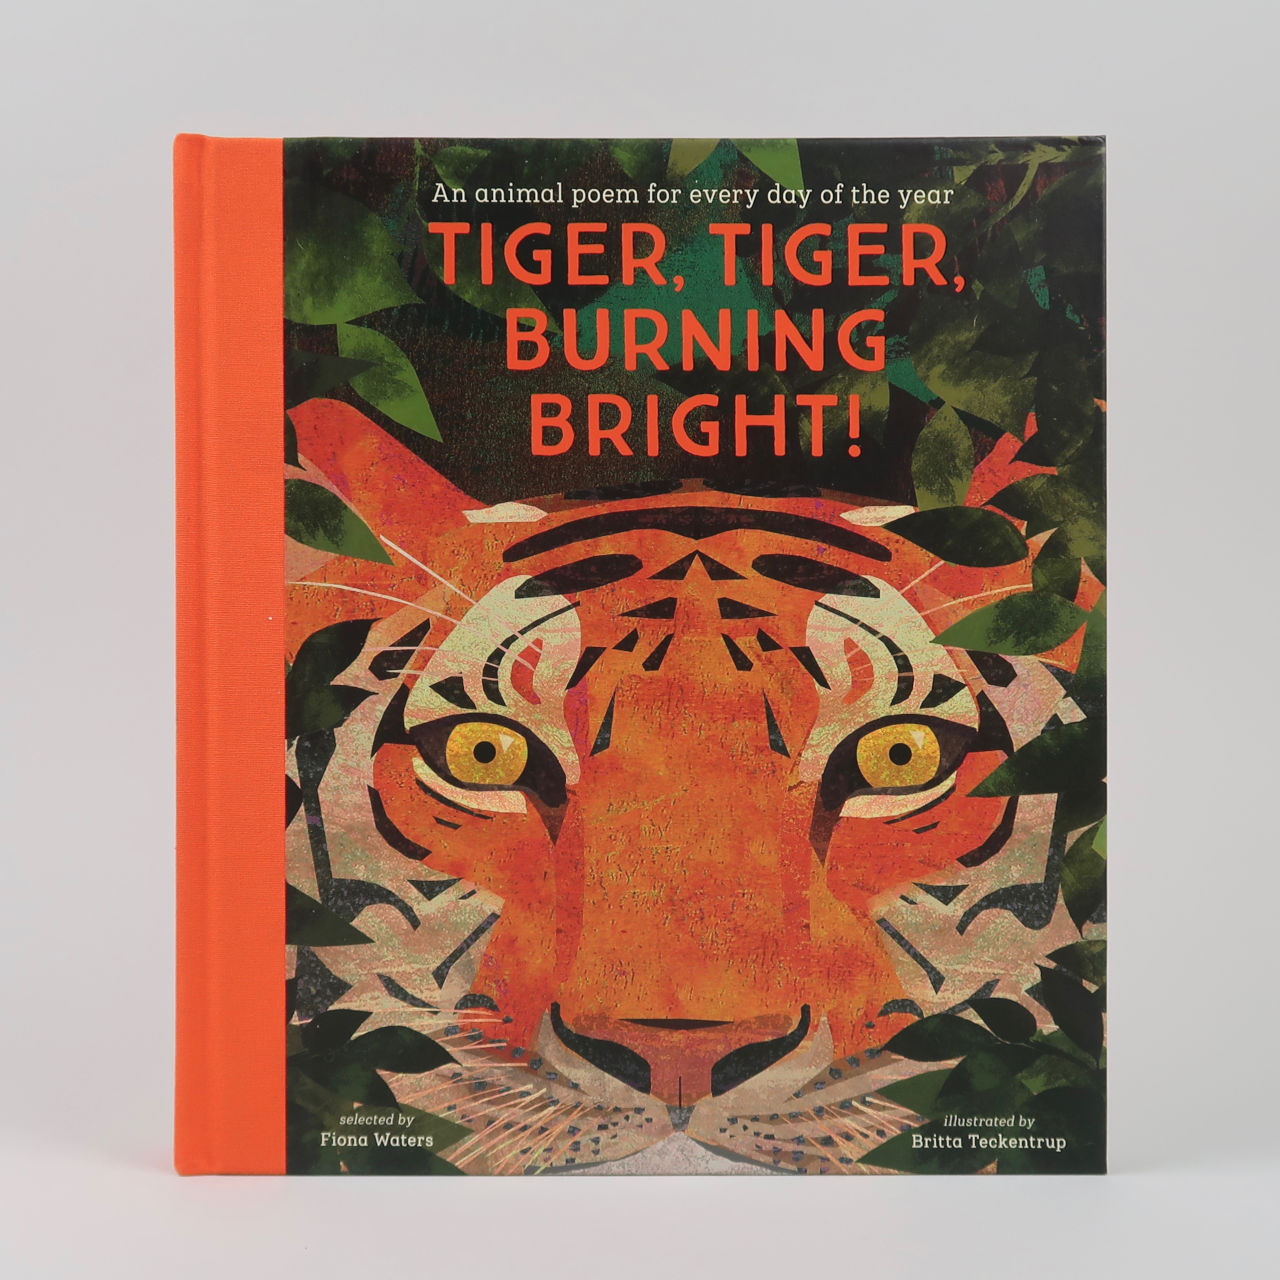 Tiger, Tiger, Burning Bright! - Fiona Waters & Britta Teckentrup